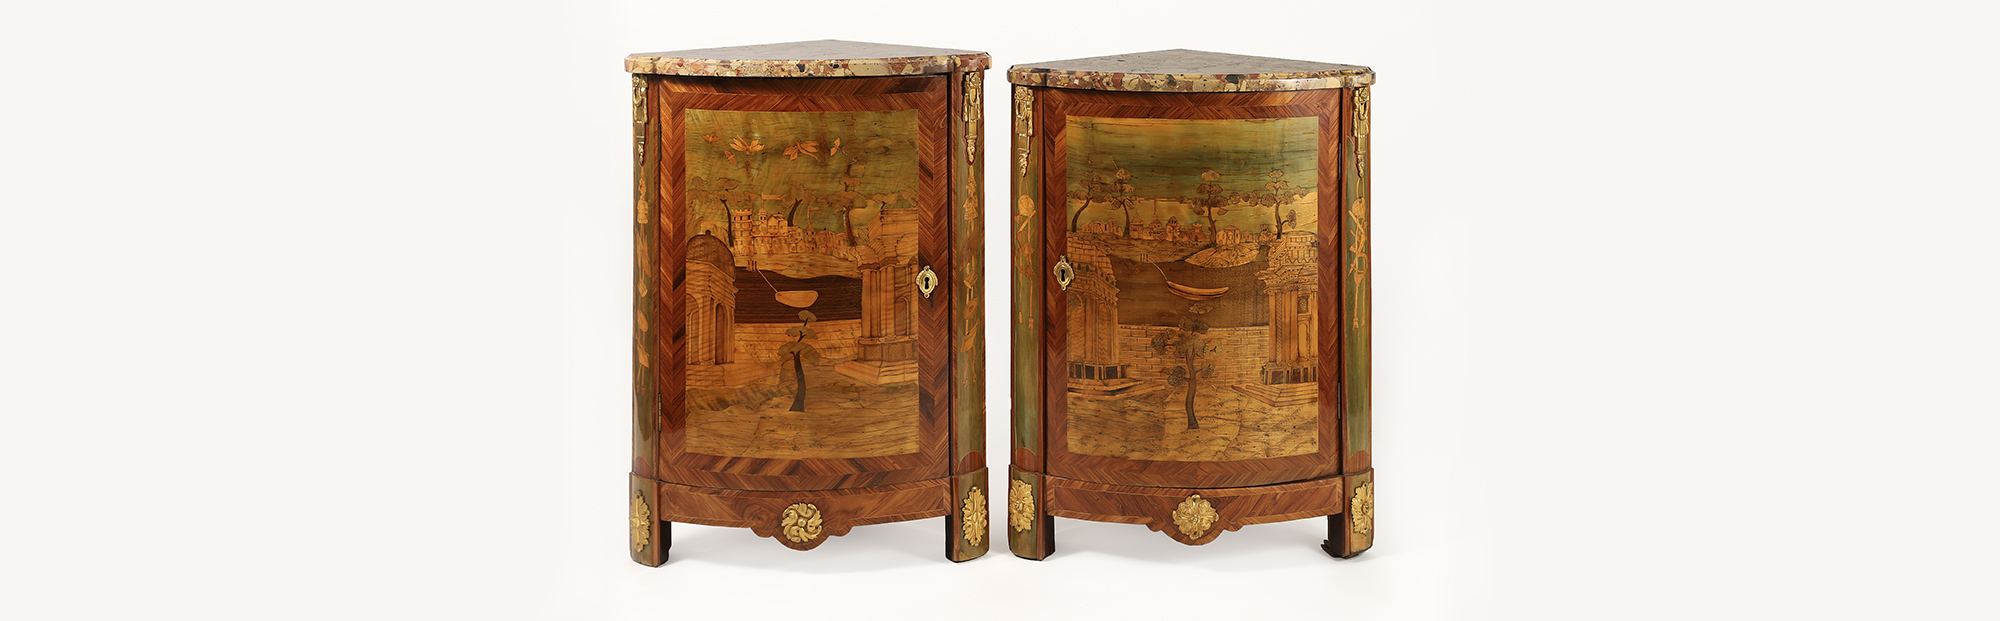 French Furniture and Decorative Arts from a New York Collector